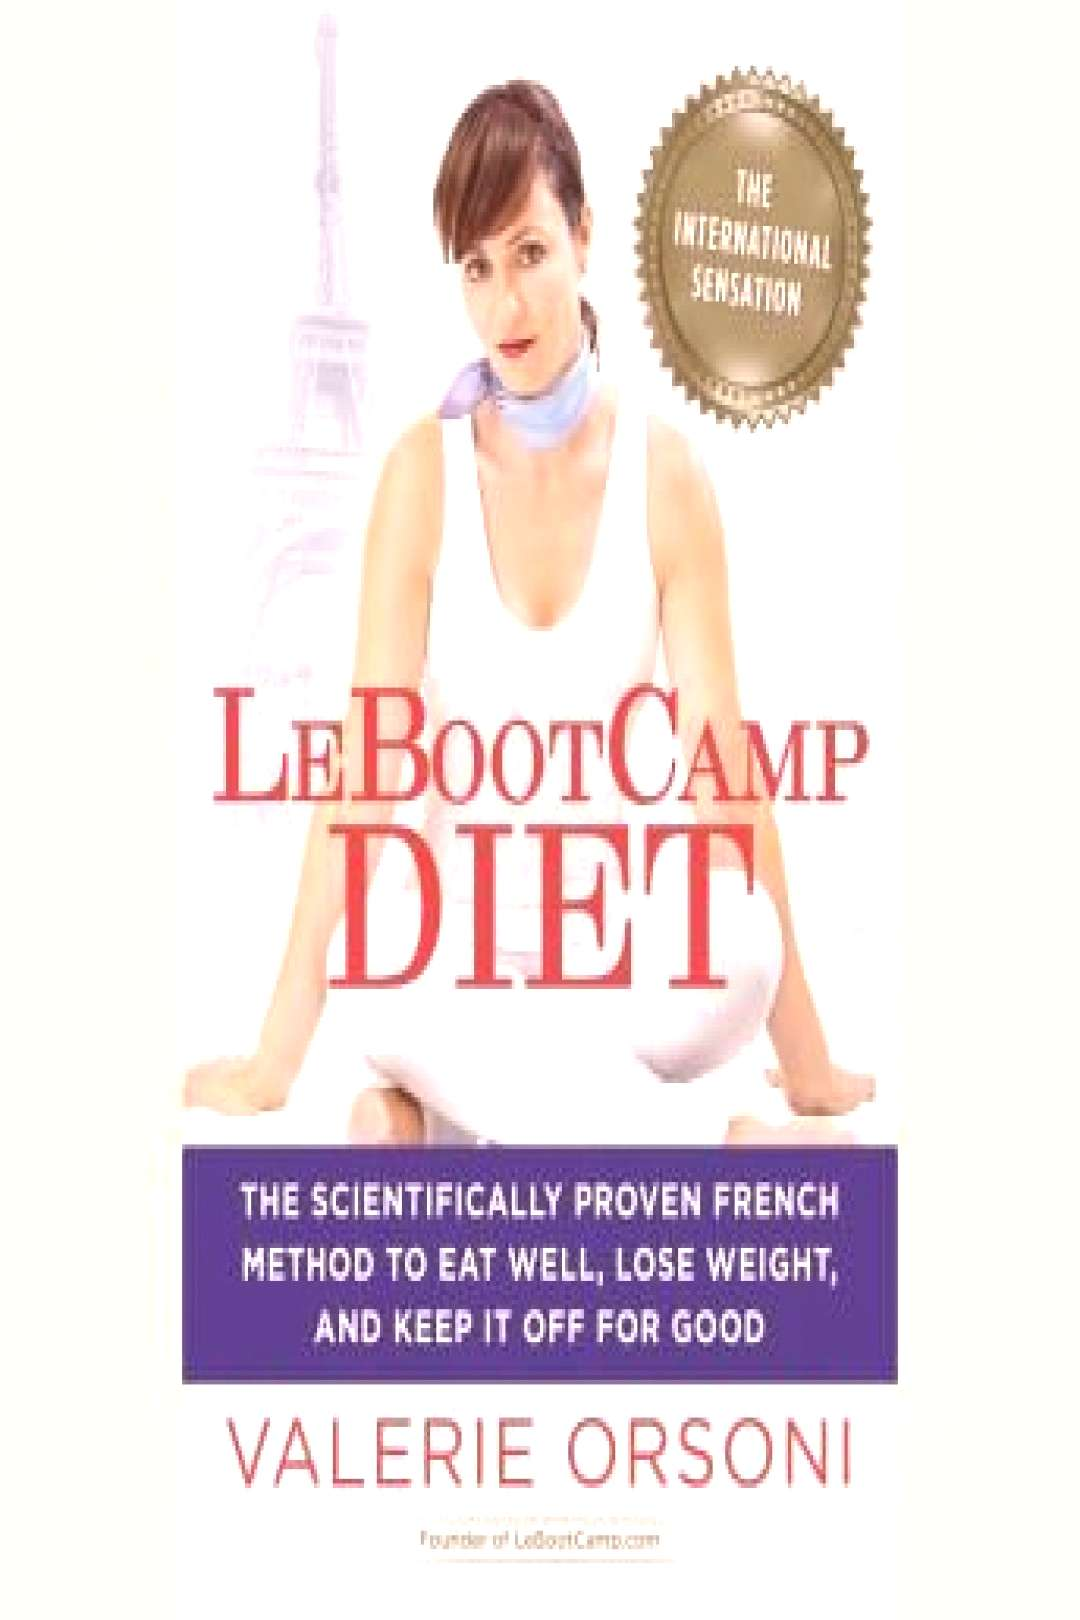 LeBootcamp Diet The Scientifically-Proven French Method to Eat Well, Lose Weight, and Keep i... Le